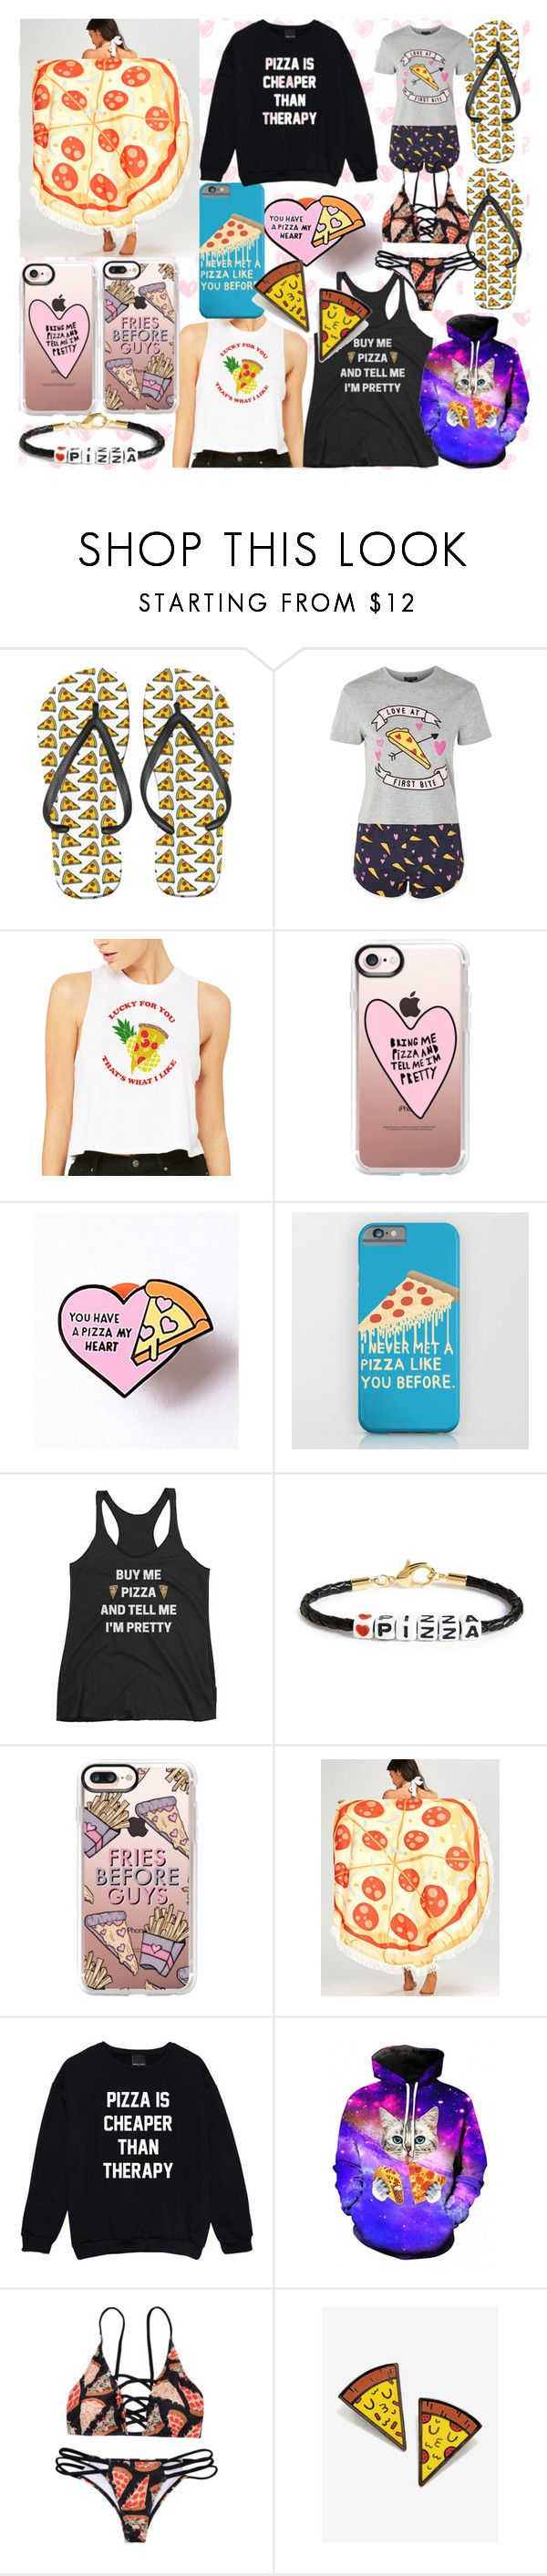 """""""Pizza pizza pizza"""" by andieok on Polyvore featuring Topshop, Casetify, Ryan Porter, WithChic and pizza"""